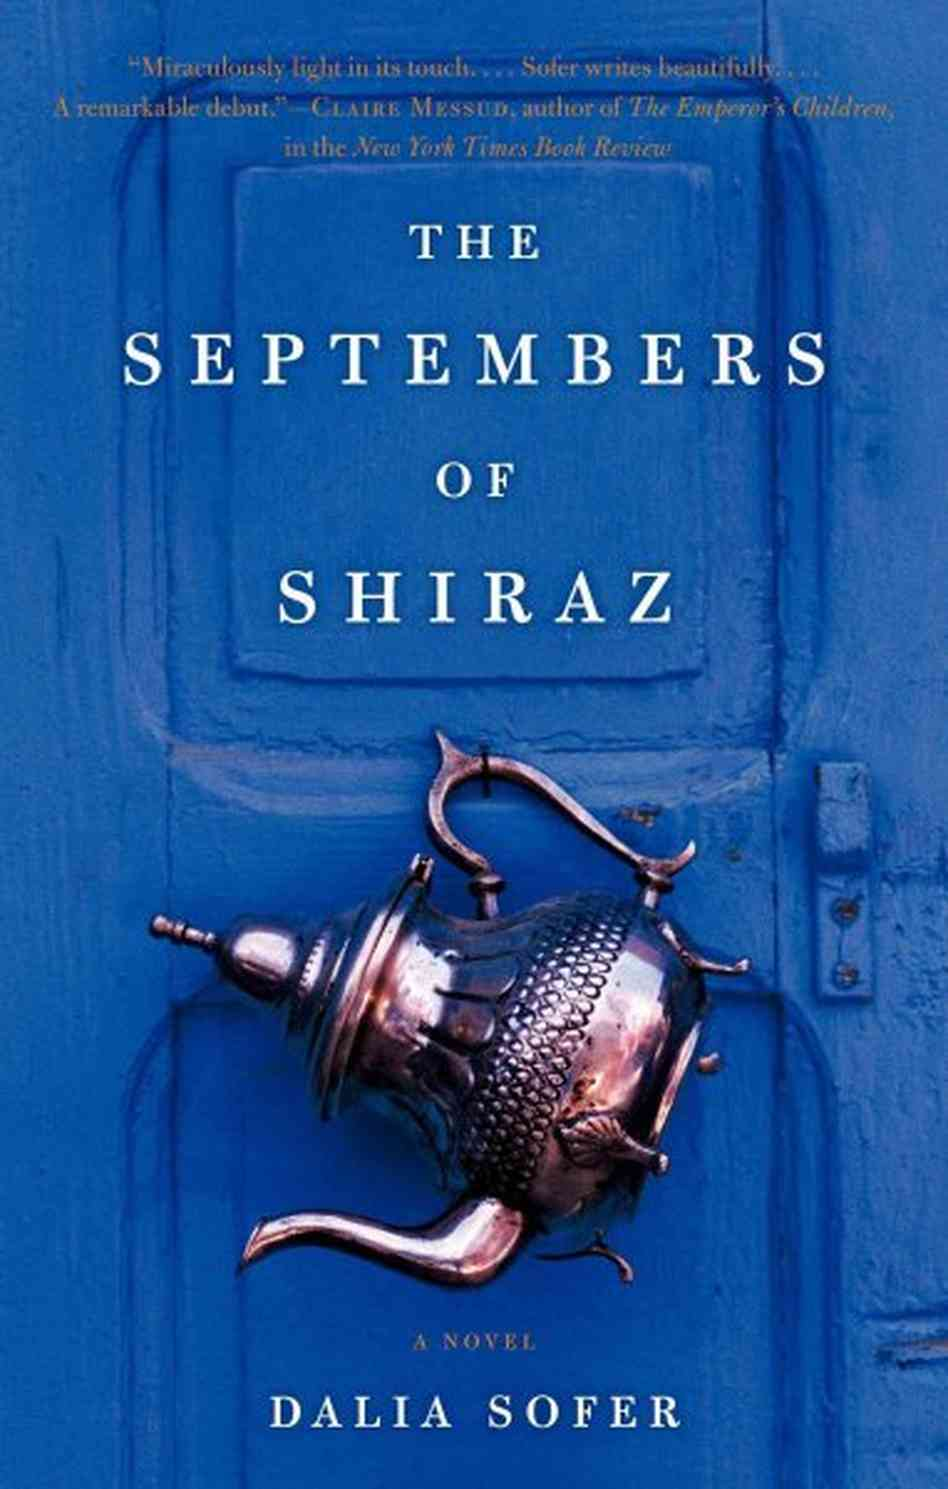 The Septembers of Shiraz-COVER BOOK-PROMO-10ABRIL2014